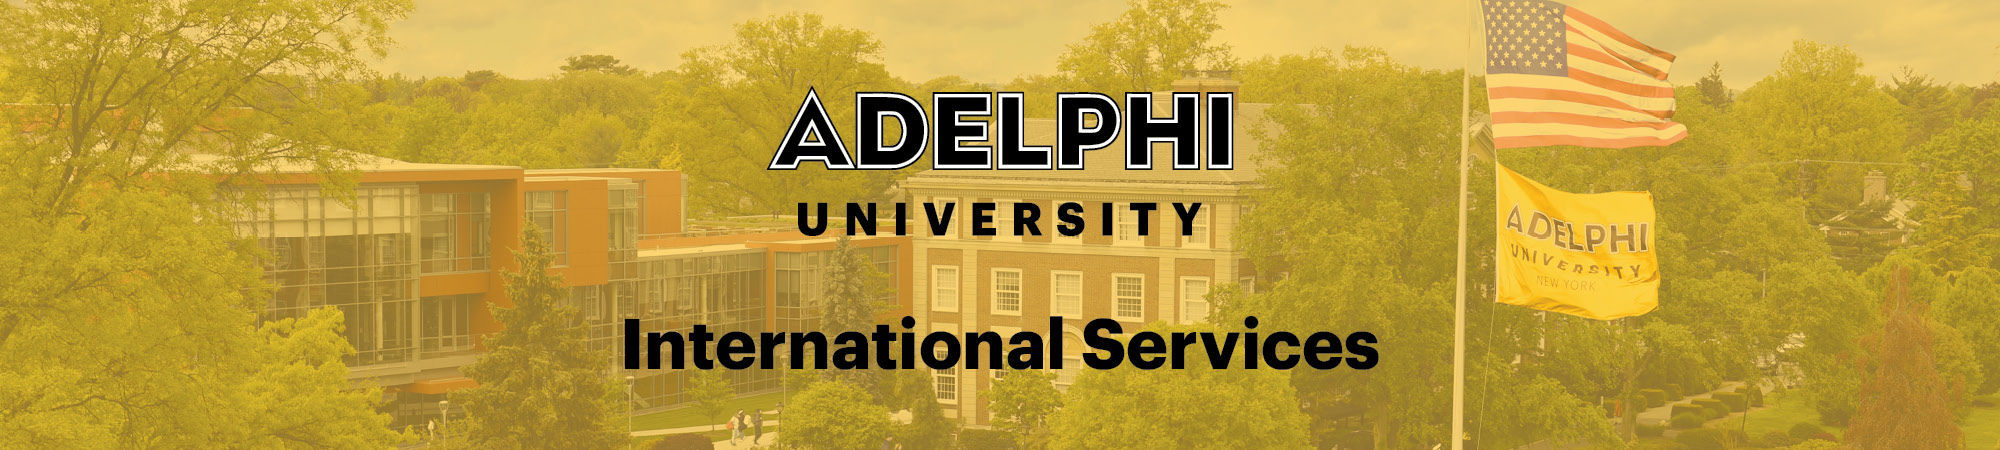 International Services - Adelphi University